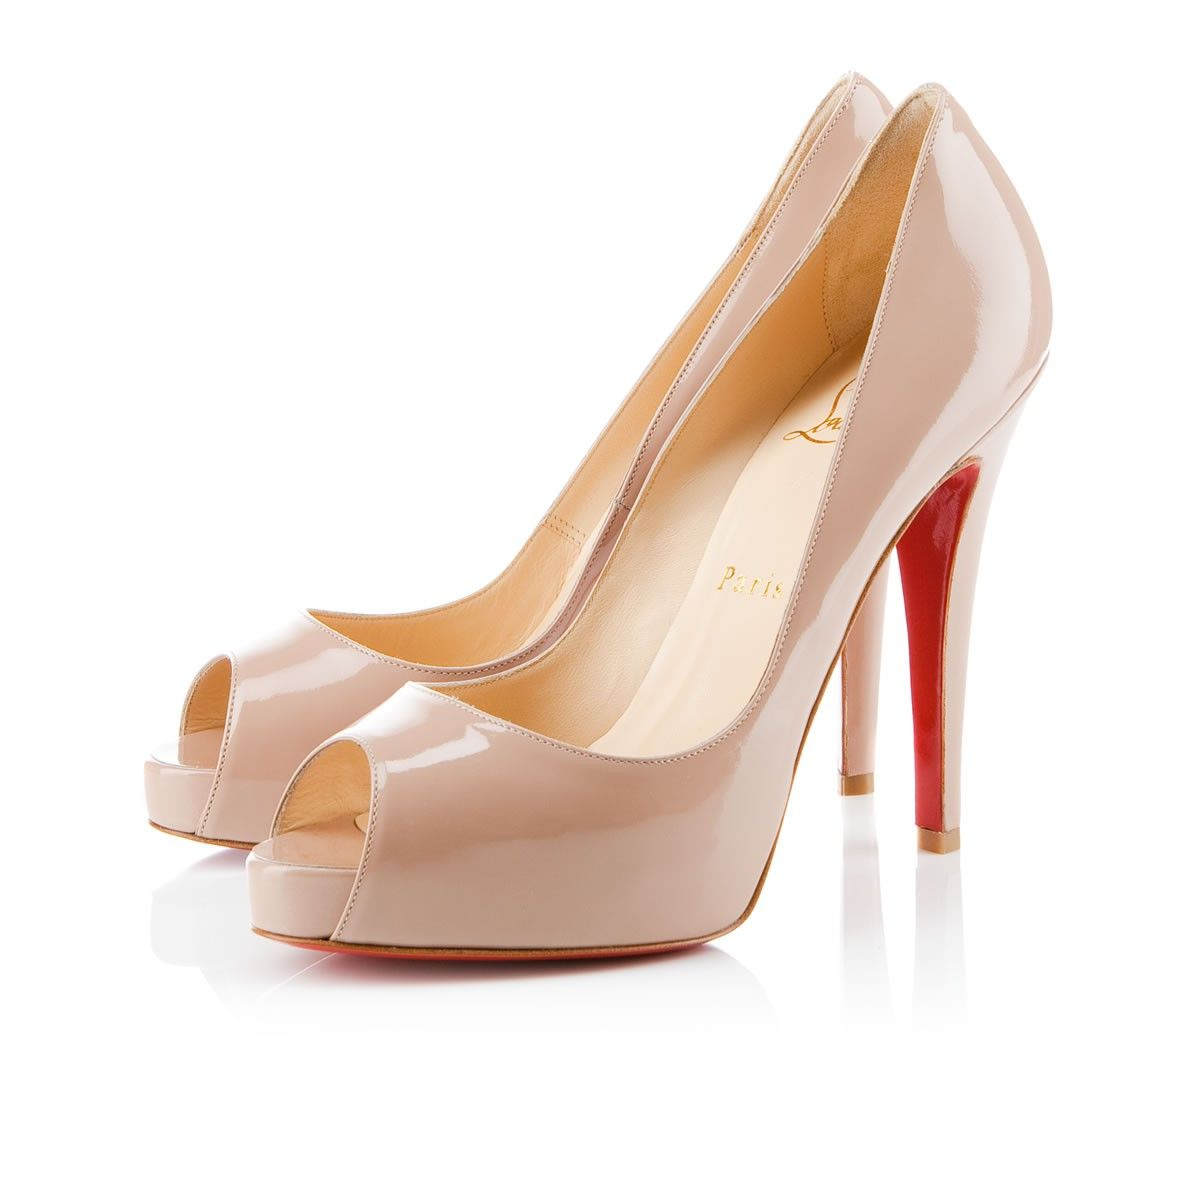 8299ce564e18 Christian Louboutin 120mm very prive nude patent leather